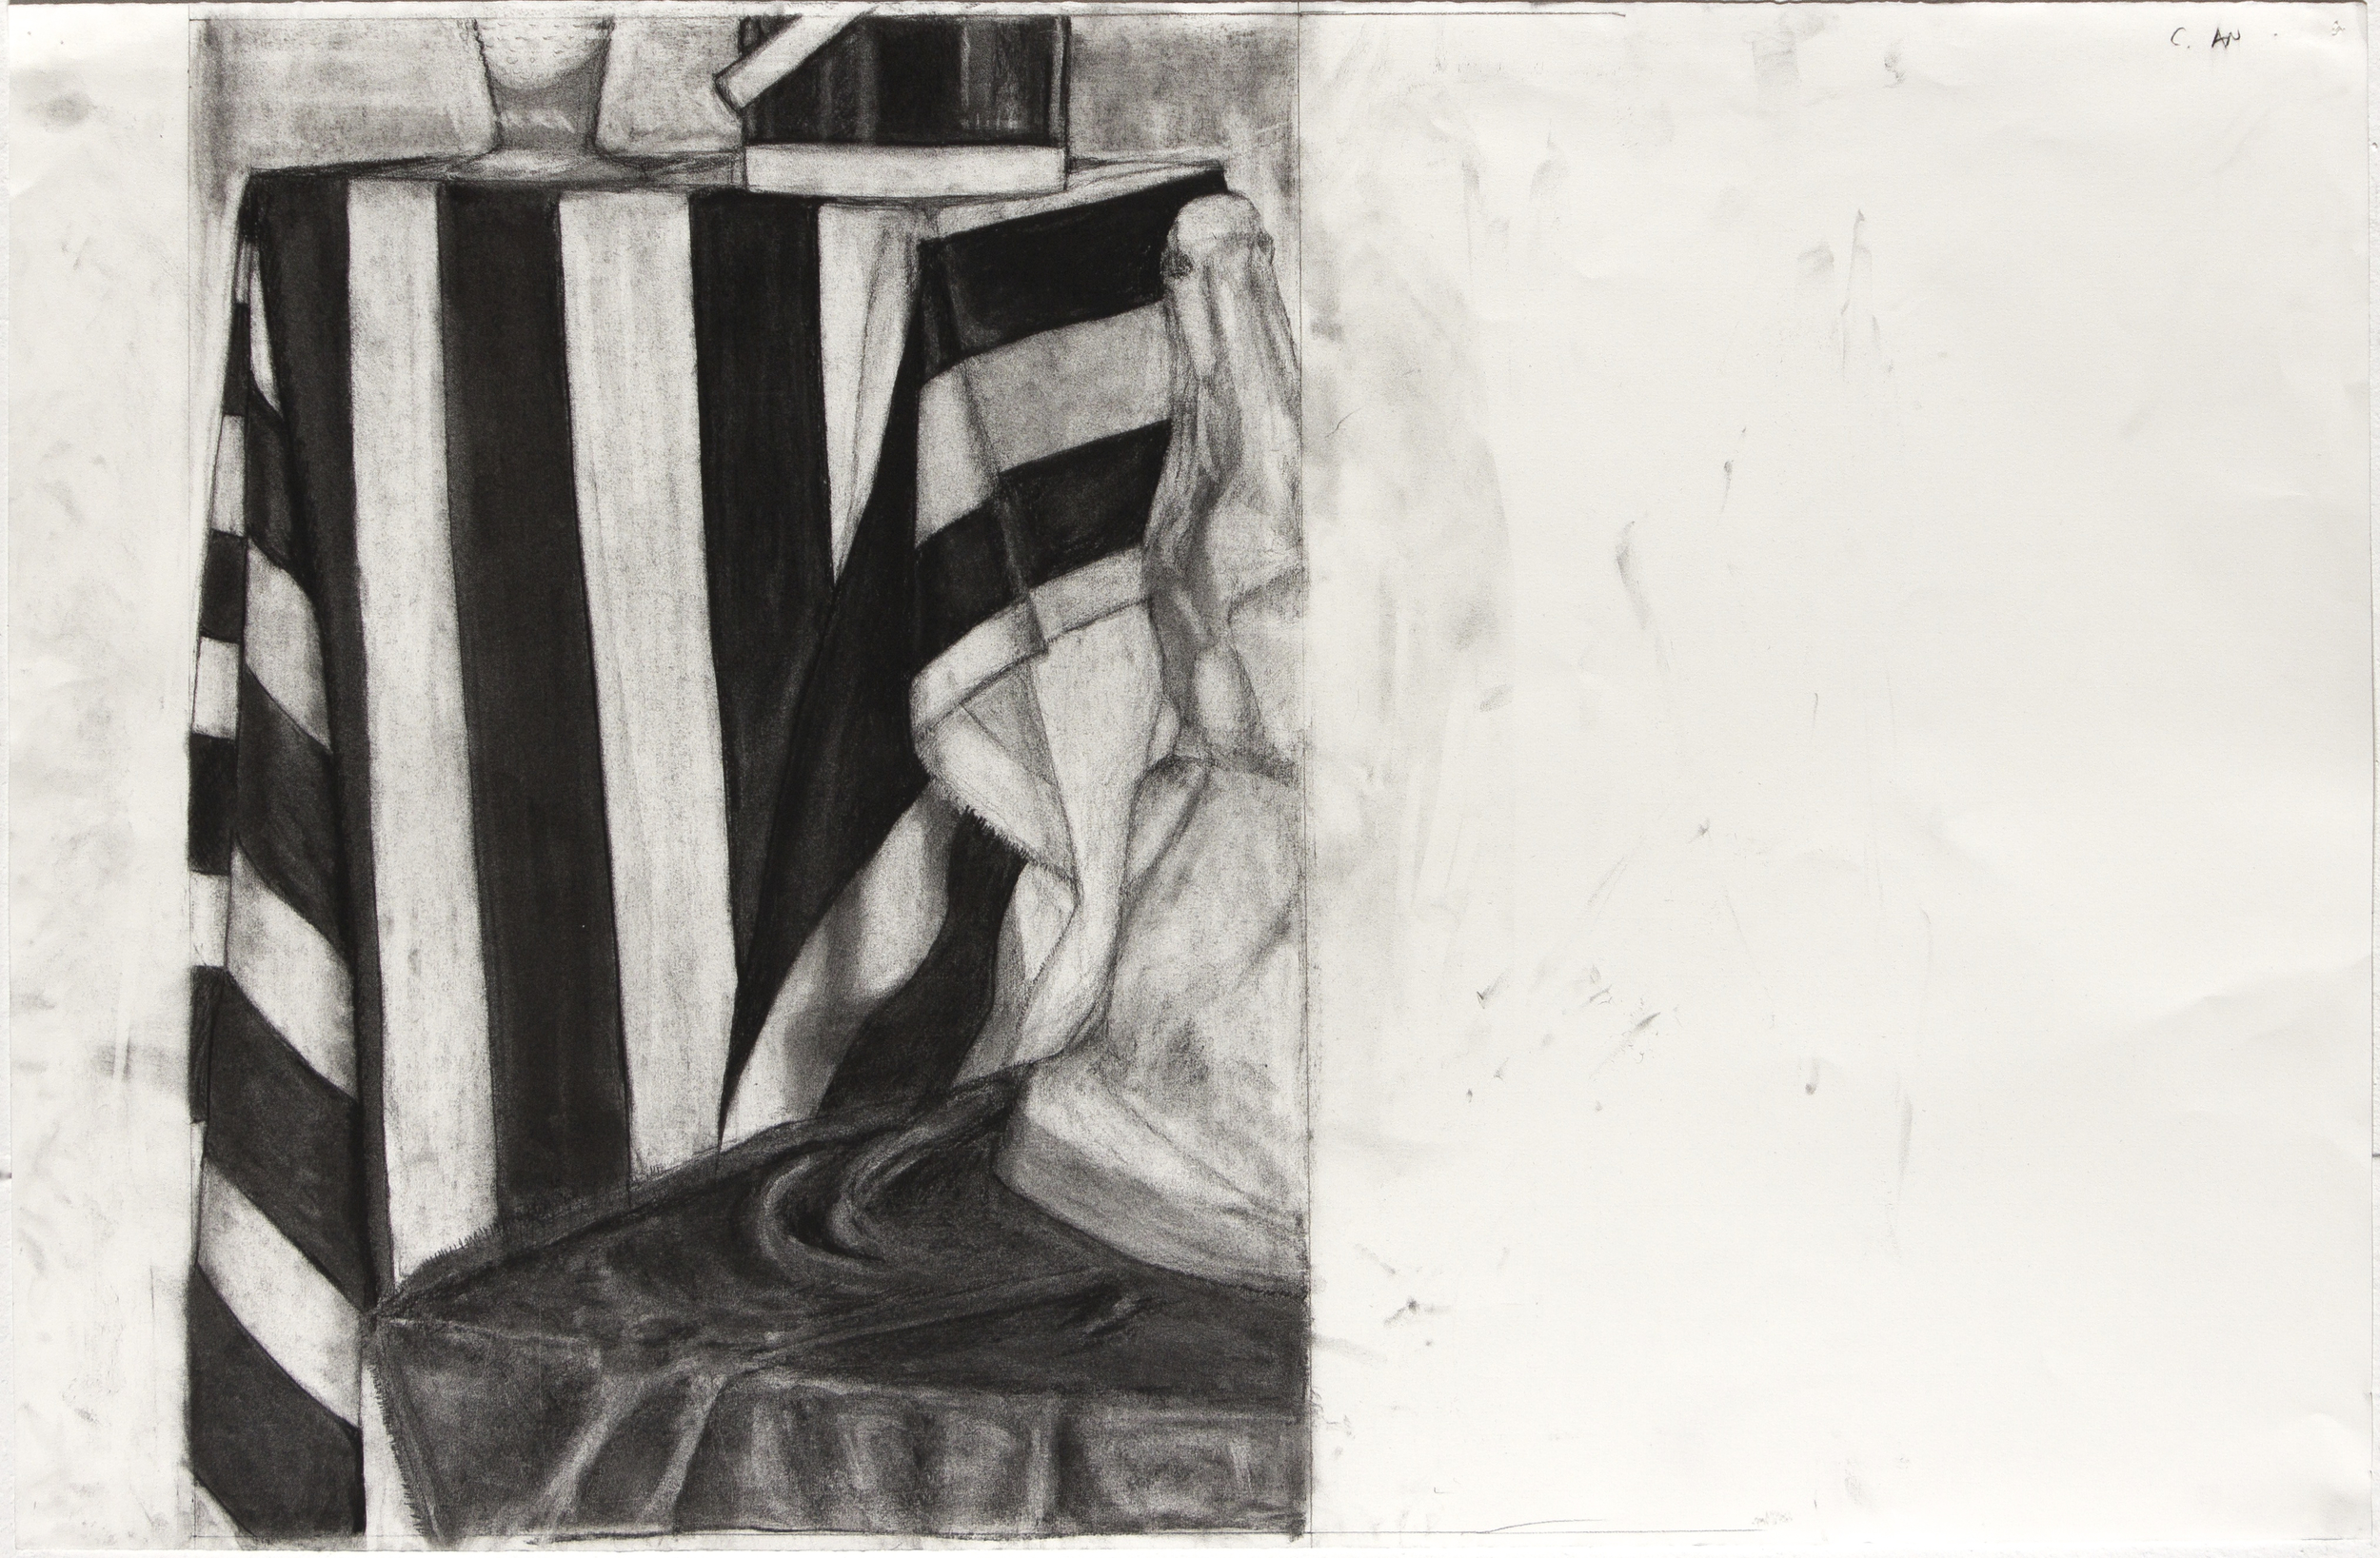 Still Life (pencil and charcoal drawing)